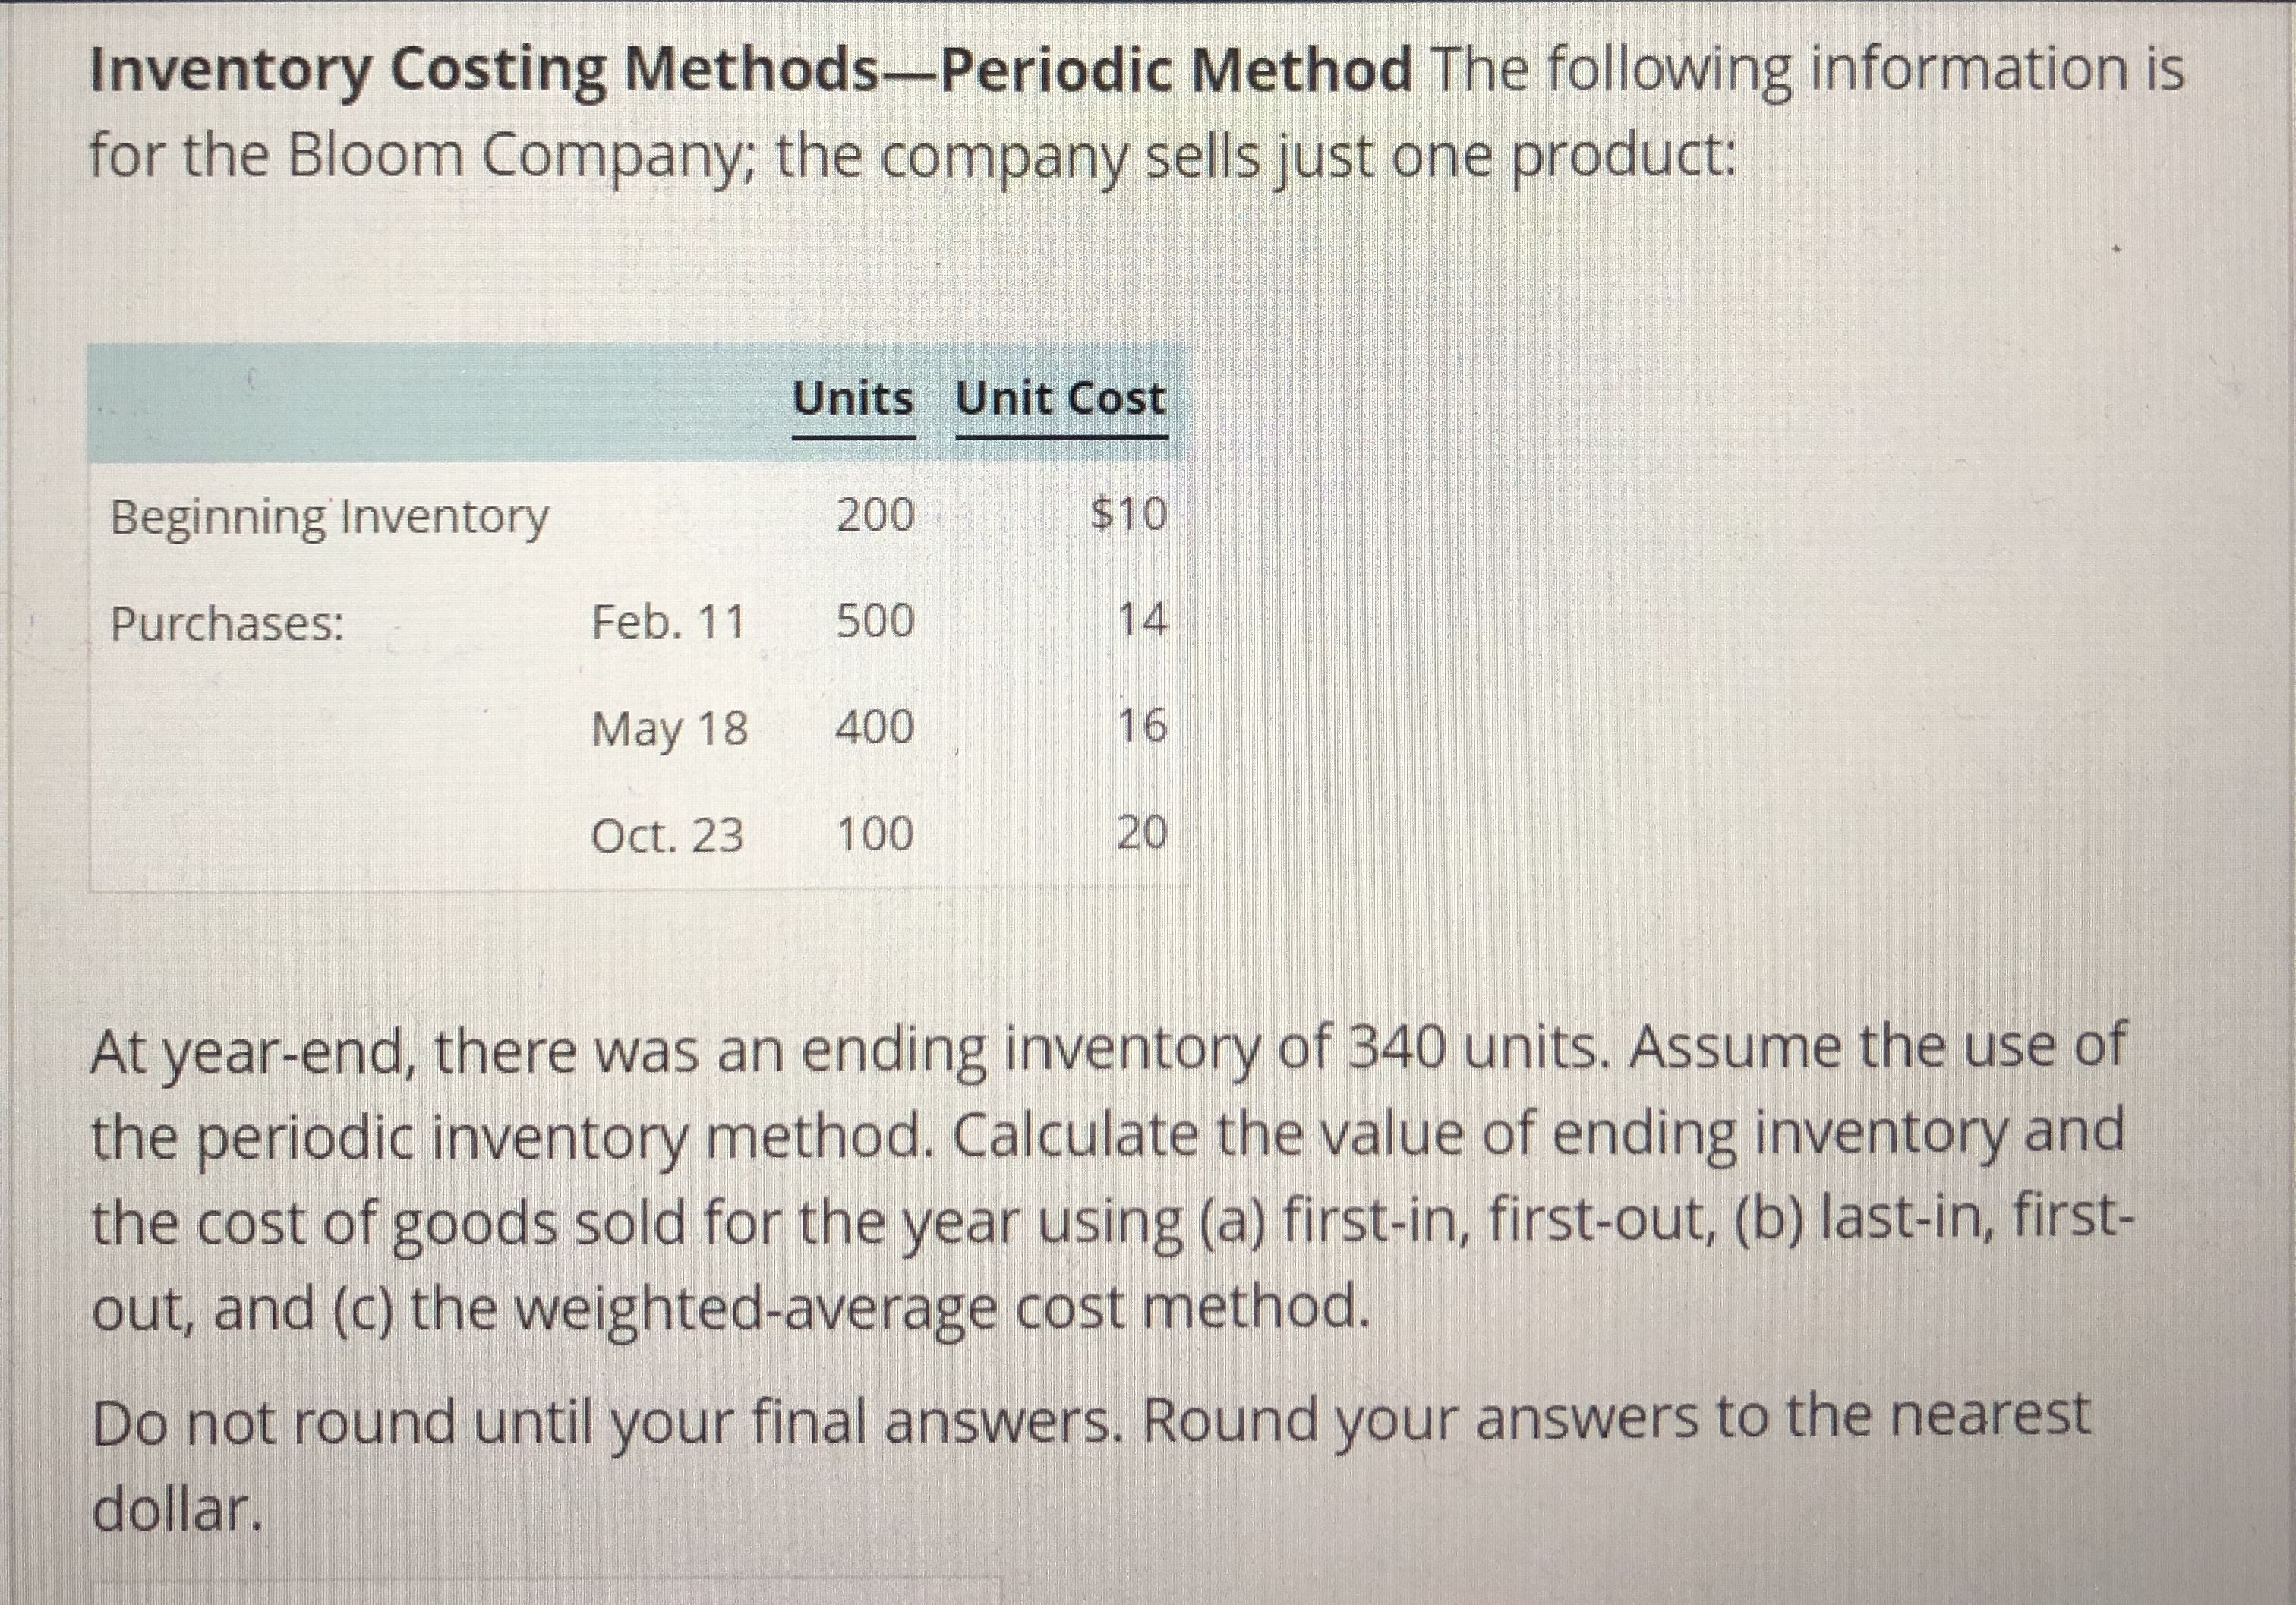 Inventory Costing Methods-Periodic Method The following information is for the Bloom Company; the company sells just one product: 200 Feb. 11 500 May 18 400 Oct. 23 100 Units Unit Cost $10 14 16 20 Beginning Inventory Purchases: At year-end, there was an ending inventory of 340 units. Assume the use of the periodic inventory method. Calculate the value of ending inventory and the cost of goods sold for the year using (a) first-in, first-out, (b) last-in, first- out, and (c) the weighted-average cost method. Do not round until your final answers. Round your answers to the nearest dollar.